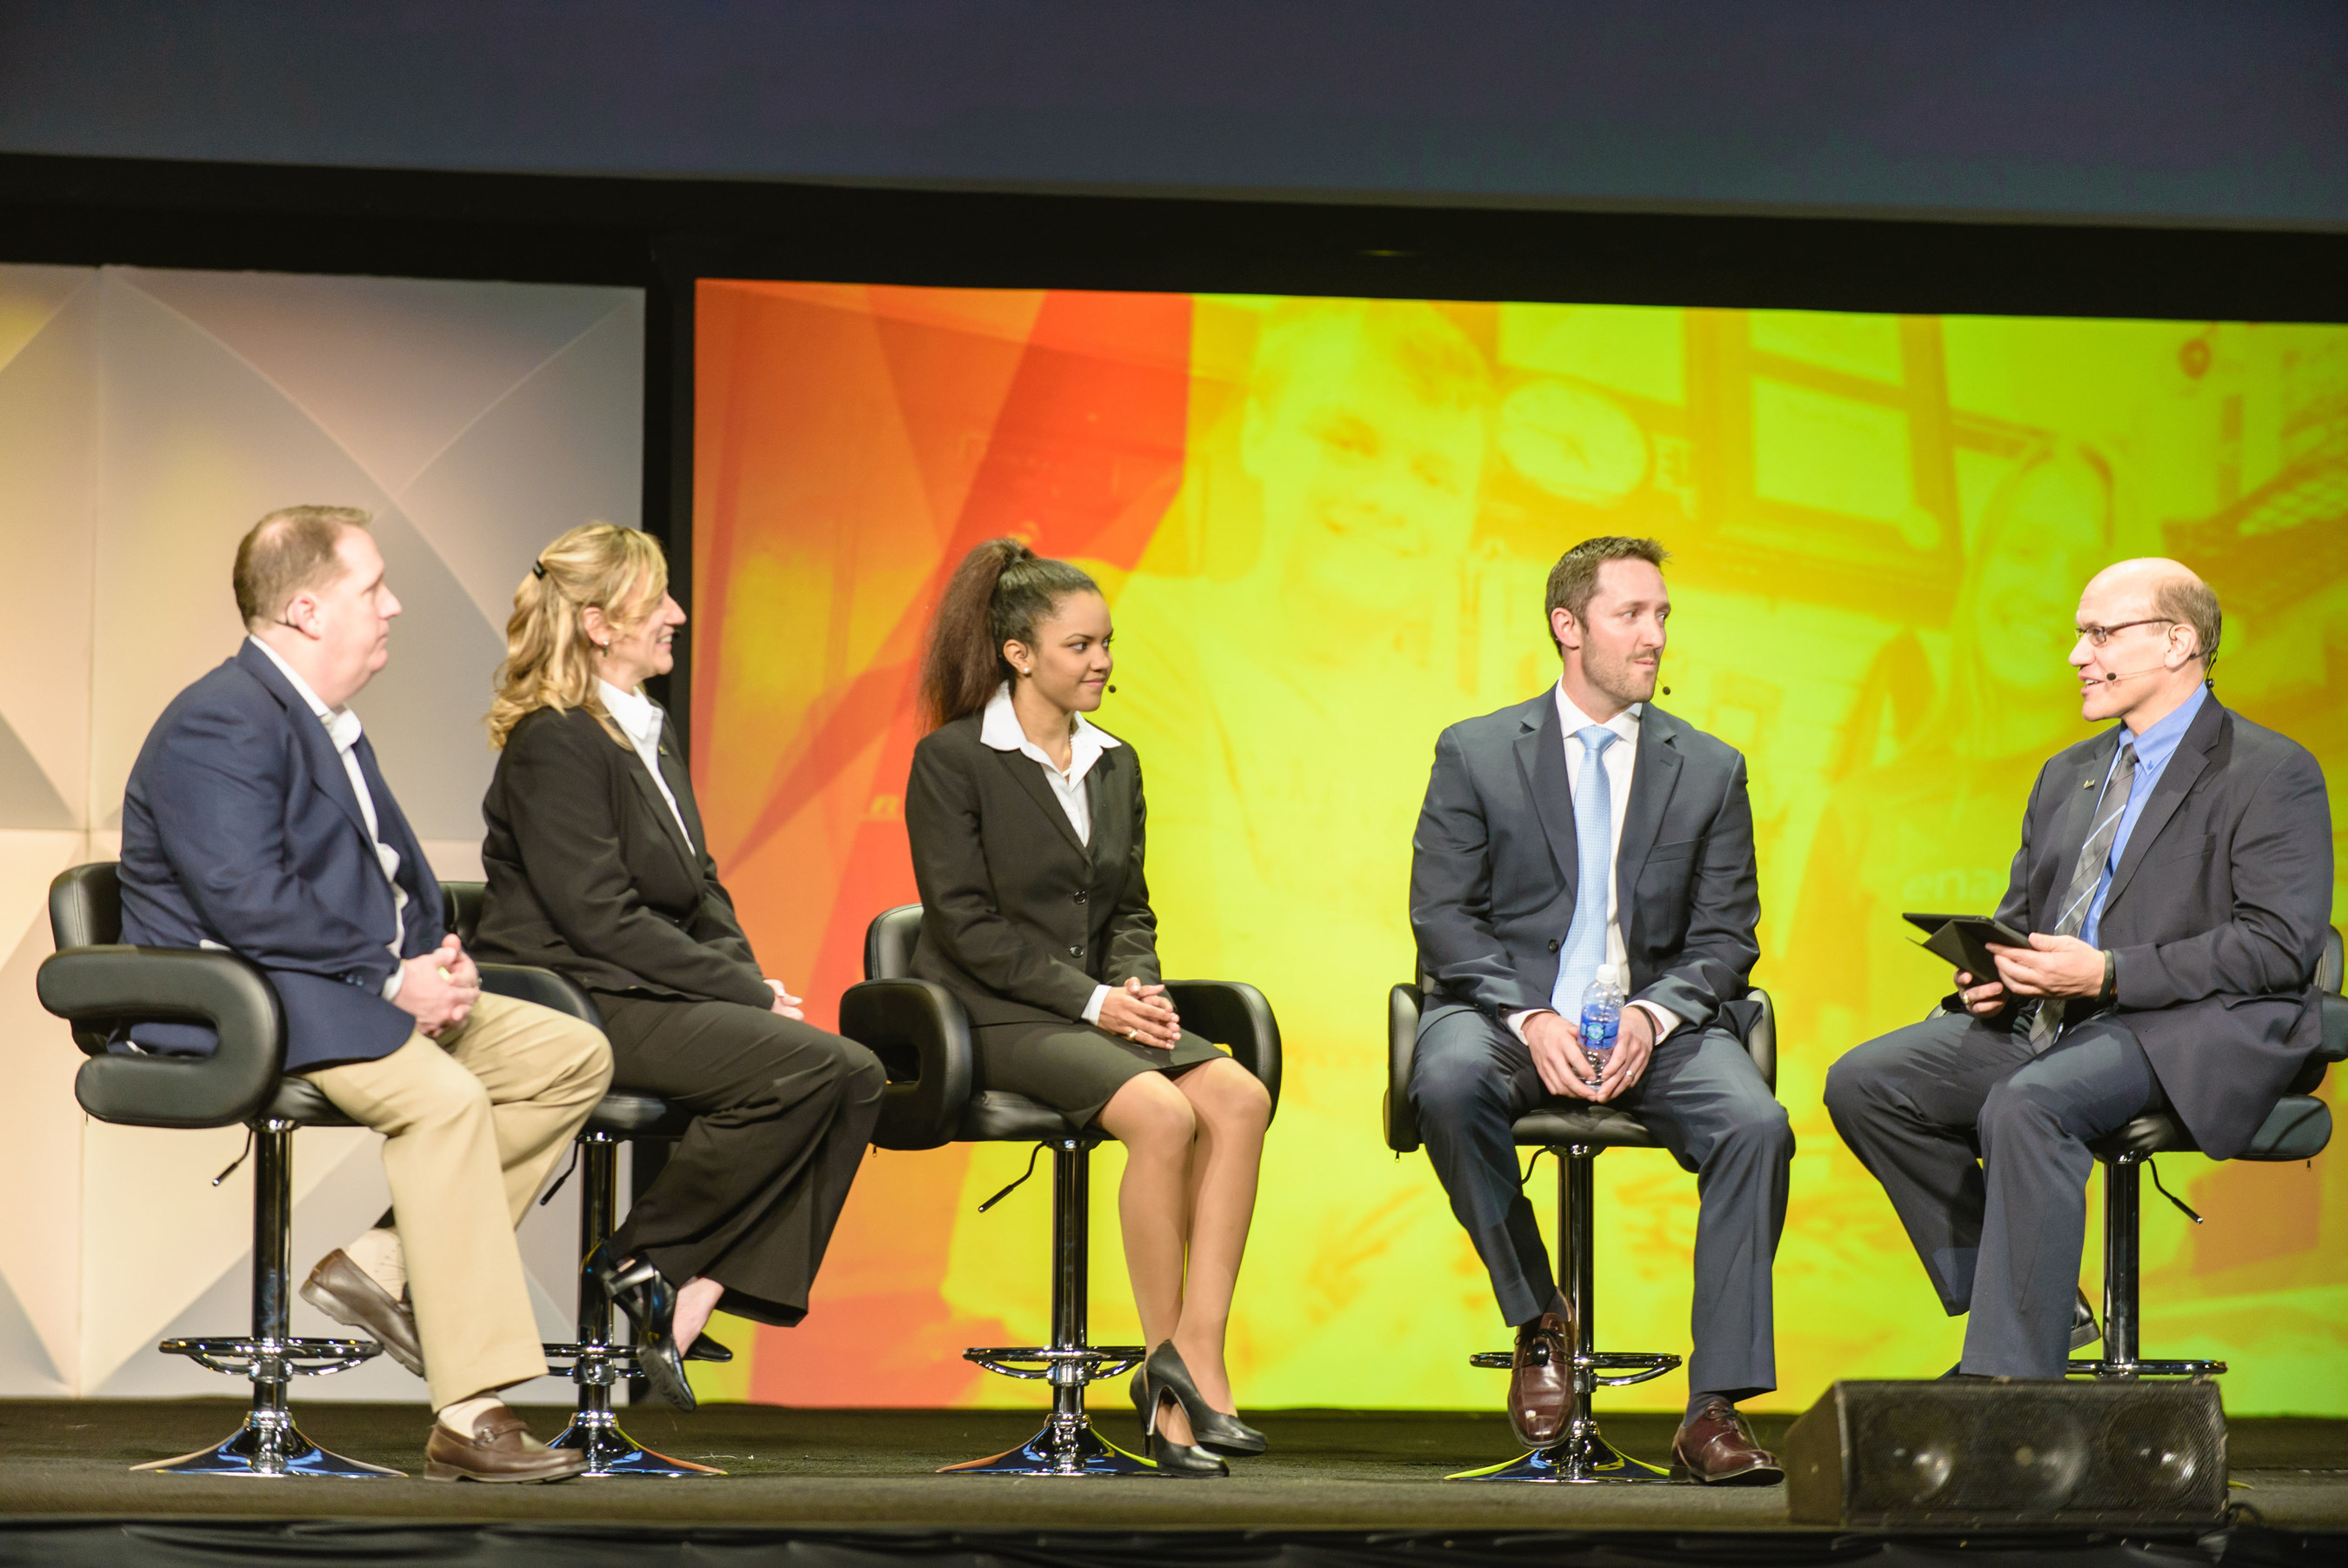 Members discuss opportunities to network and collaborate at the Enactus United States National Exposition Opening Round Ceremony. (L to R) Mike Moore: Chairman, Enactus United States National Advisory Board, EVP and President of Small Formats for Walmart US, Walmart Stores, Inc.; Cynthia Wood; Chelsea Watkins; Tim Clow; Alex Perwich: President, Enactus United States